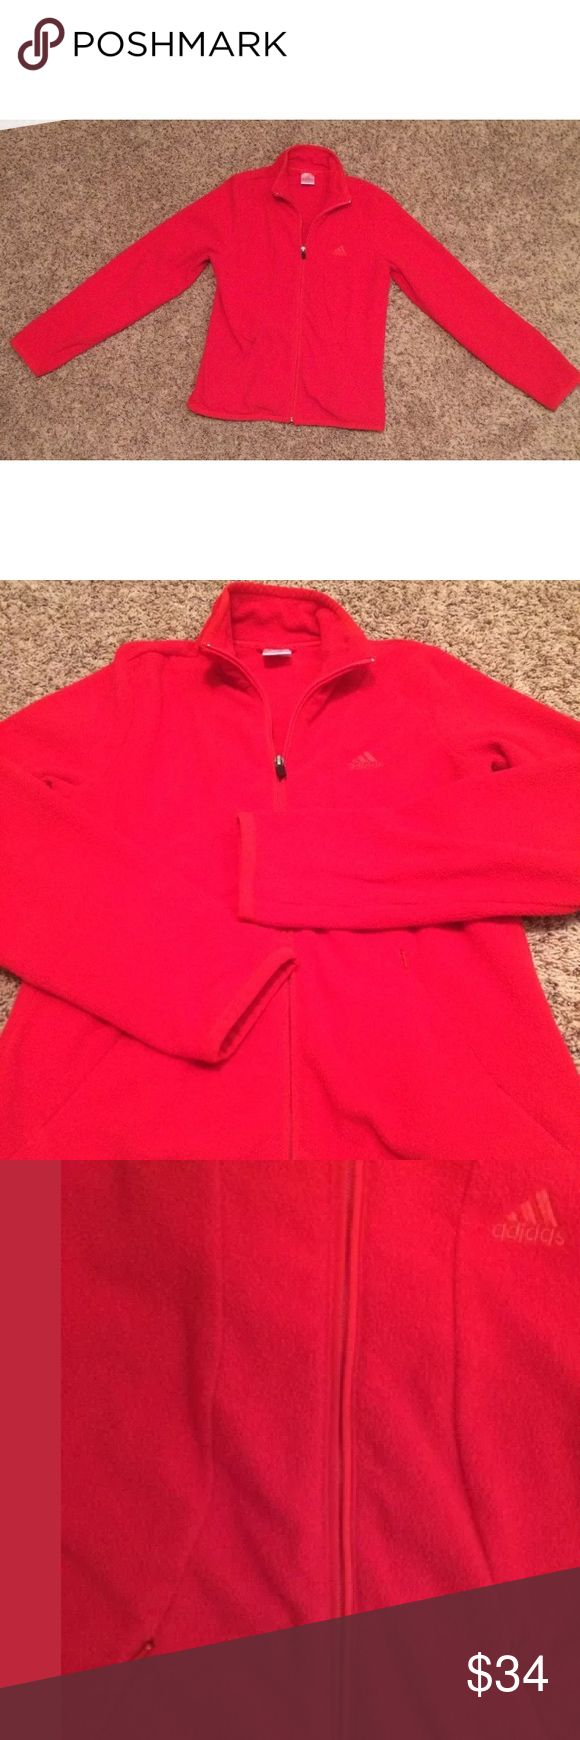 """Adidas Women's Red Long Sleeve Zip Up Fleece med Adidas Women's Red Long Sleeve Full Zip Up Fleece, 2 side hideaway zip pockets, Size Medium, Bust 36"""", 100% Polyester New without Tags flawless Tops Tees - Long Sleeve"""